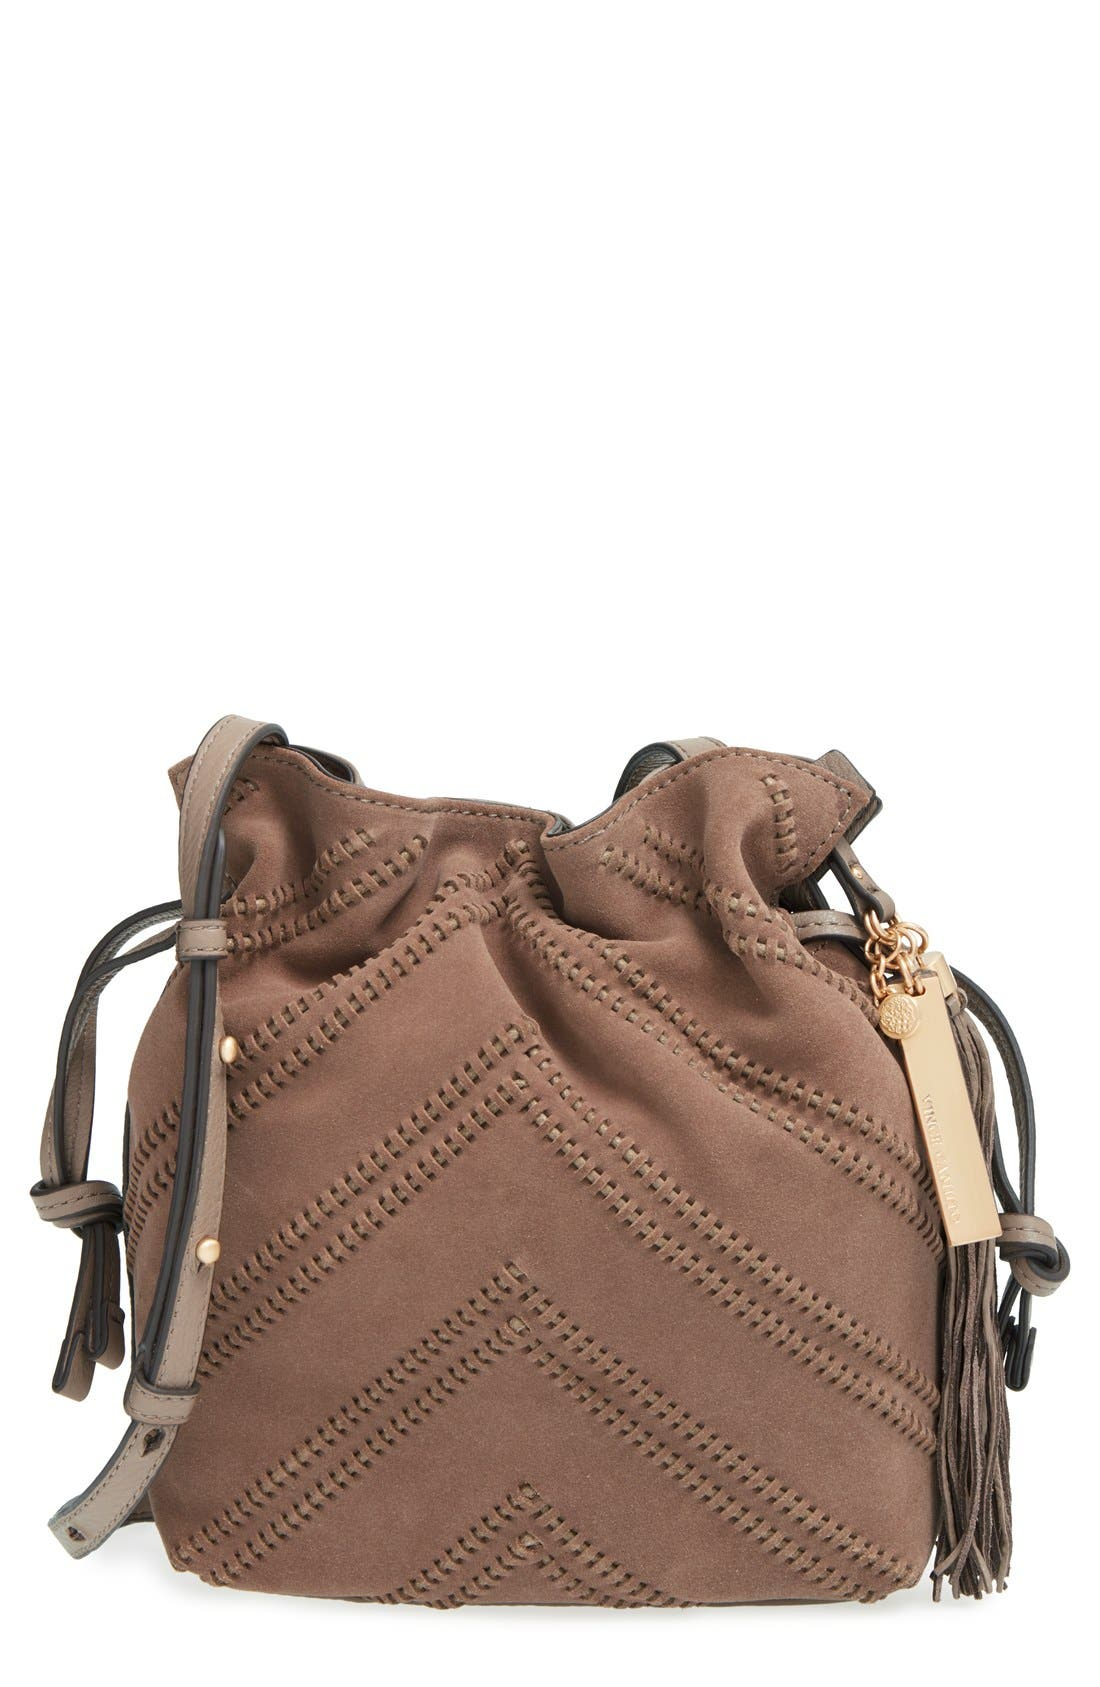 Alternate Image 1 Selected - Vince Camuto 'Nella' Crossbody Bag